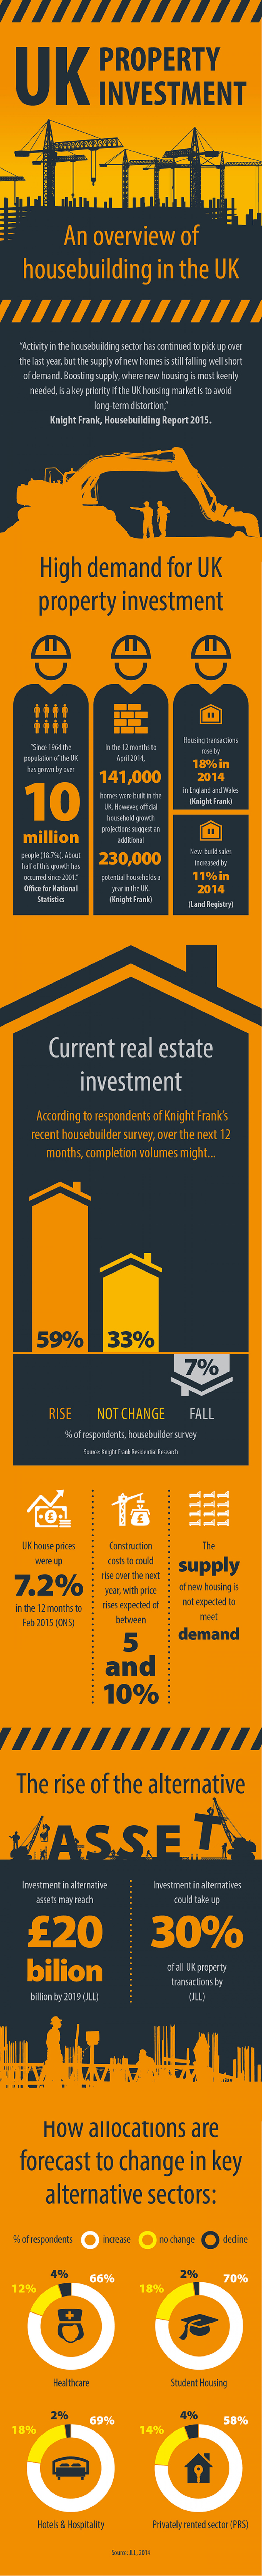 Building a stronger market through UK property investment Infographic